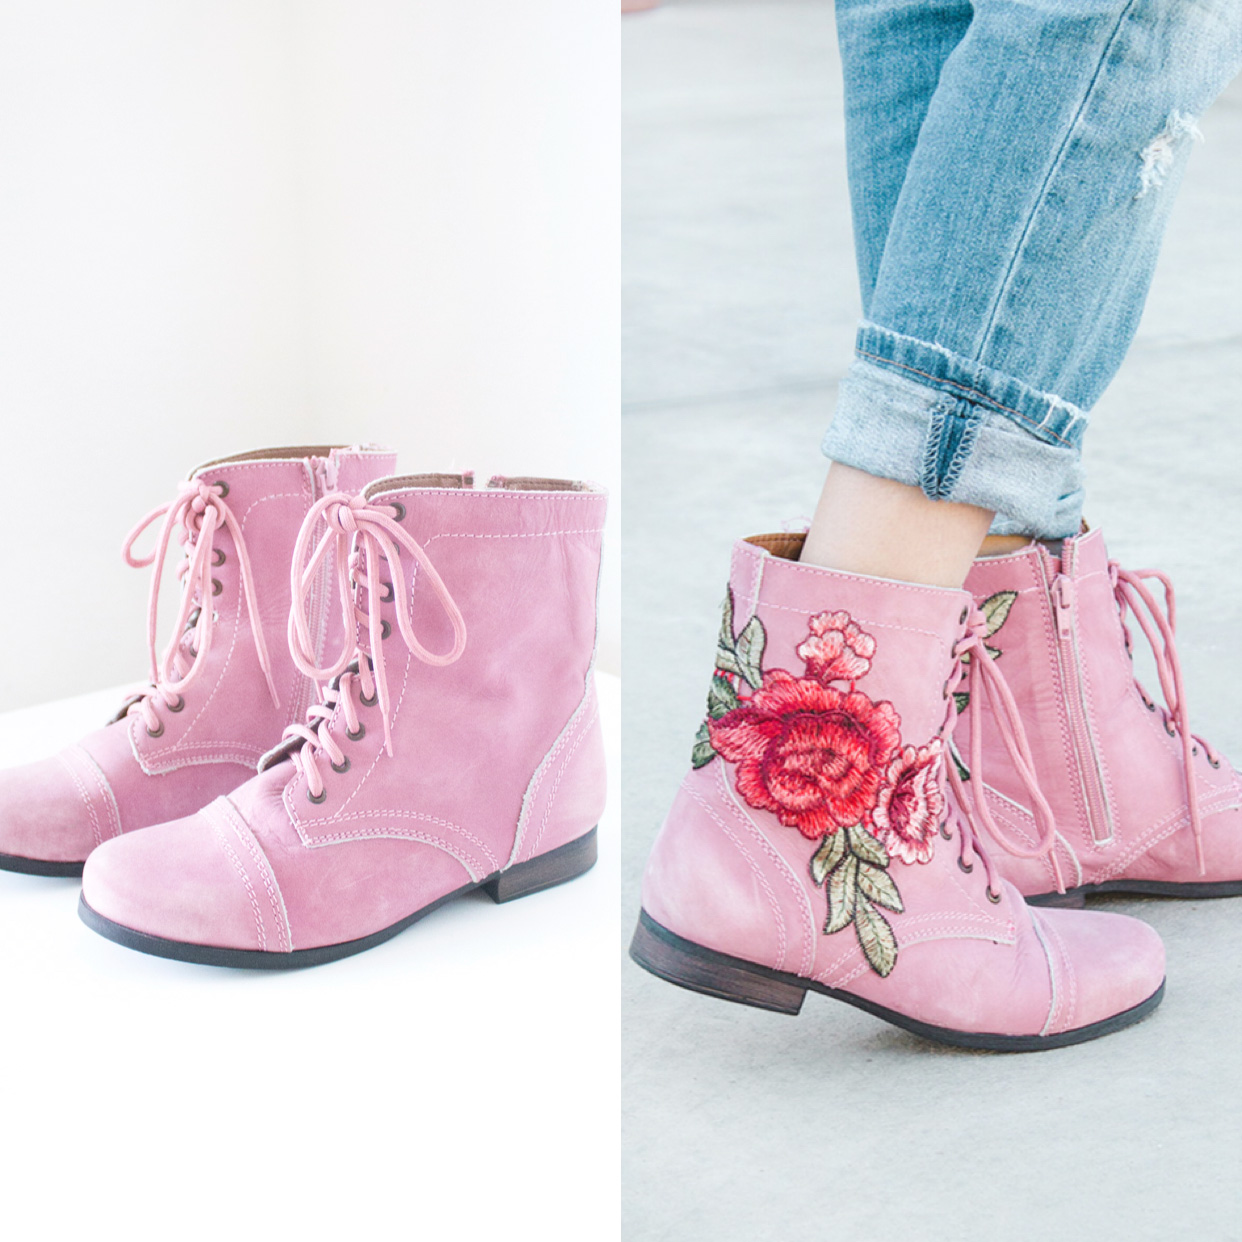 floral embroidered patch combat boots before and after image